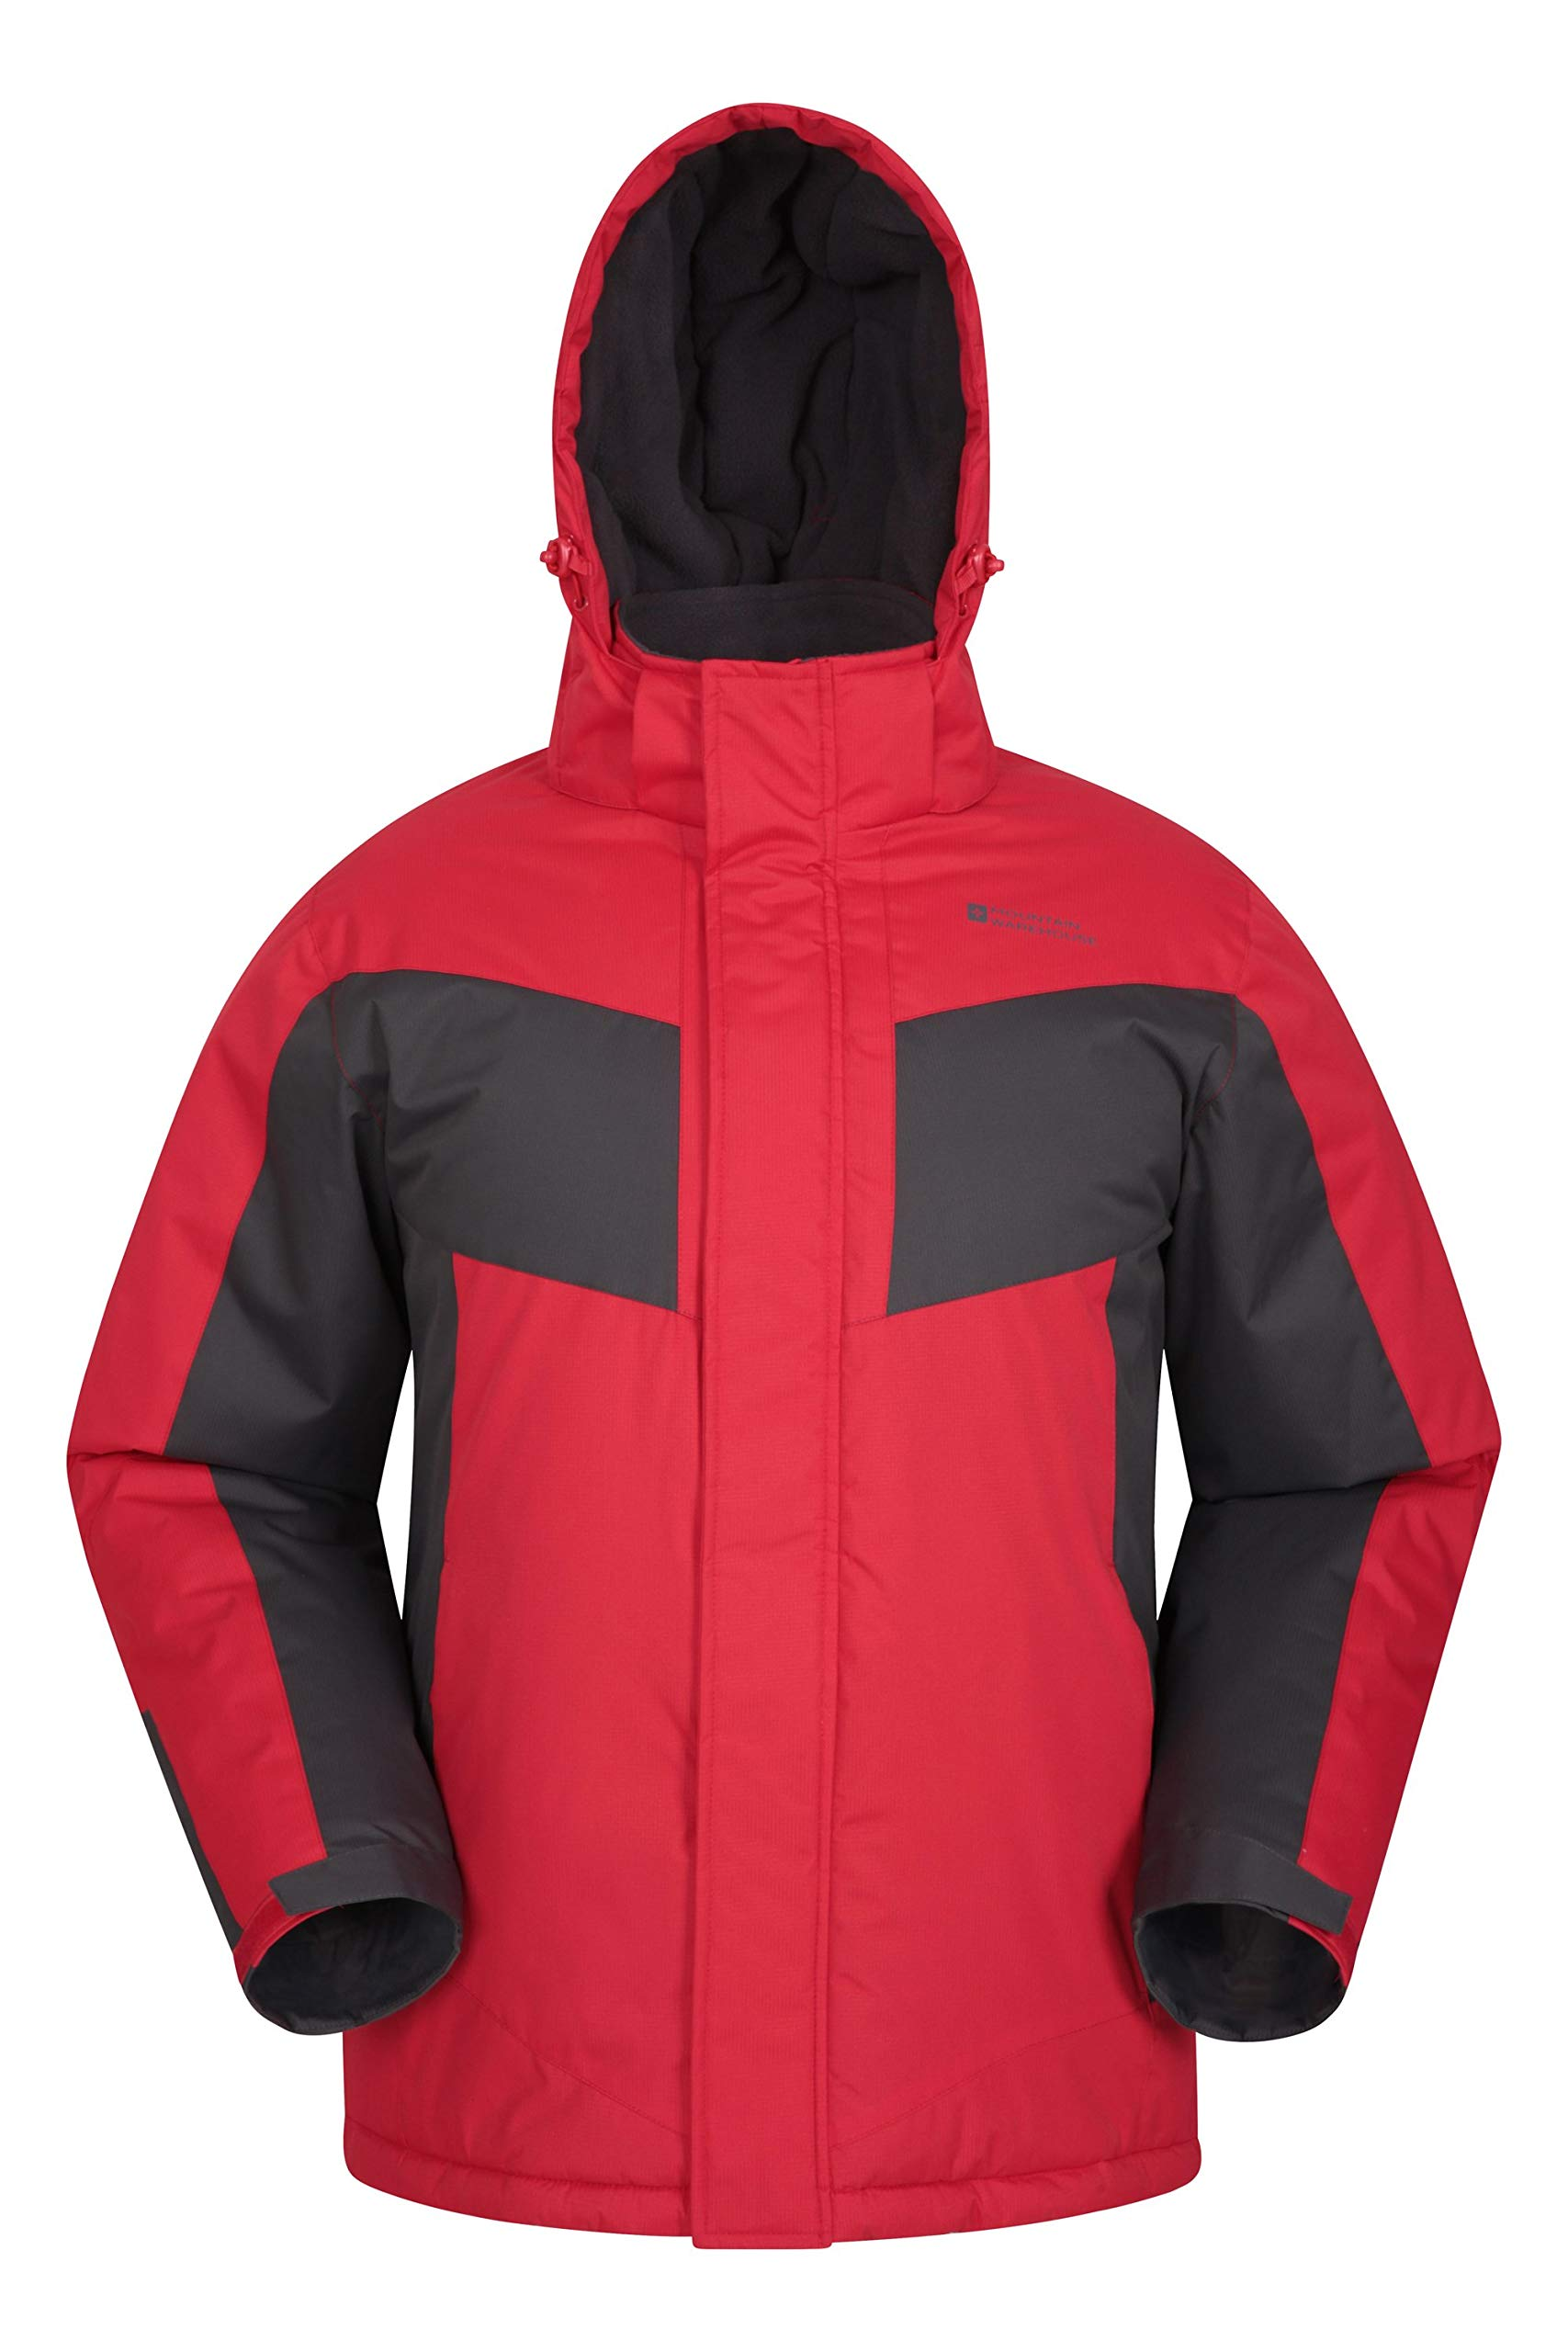 Mountain Warehouse Dusk Mens Jacket